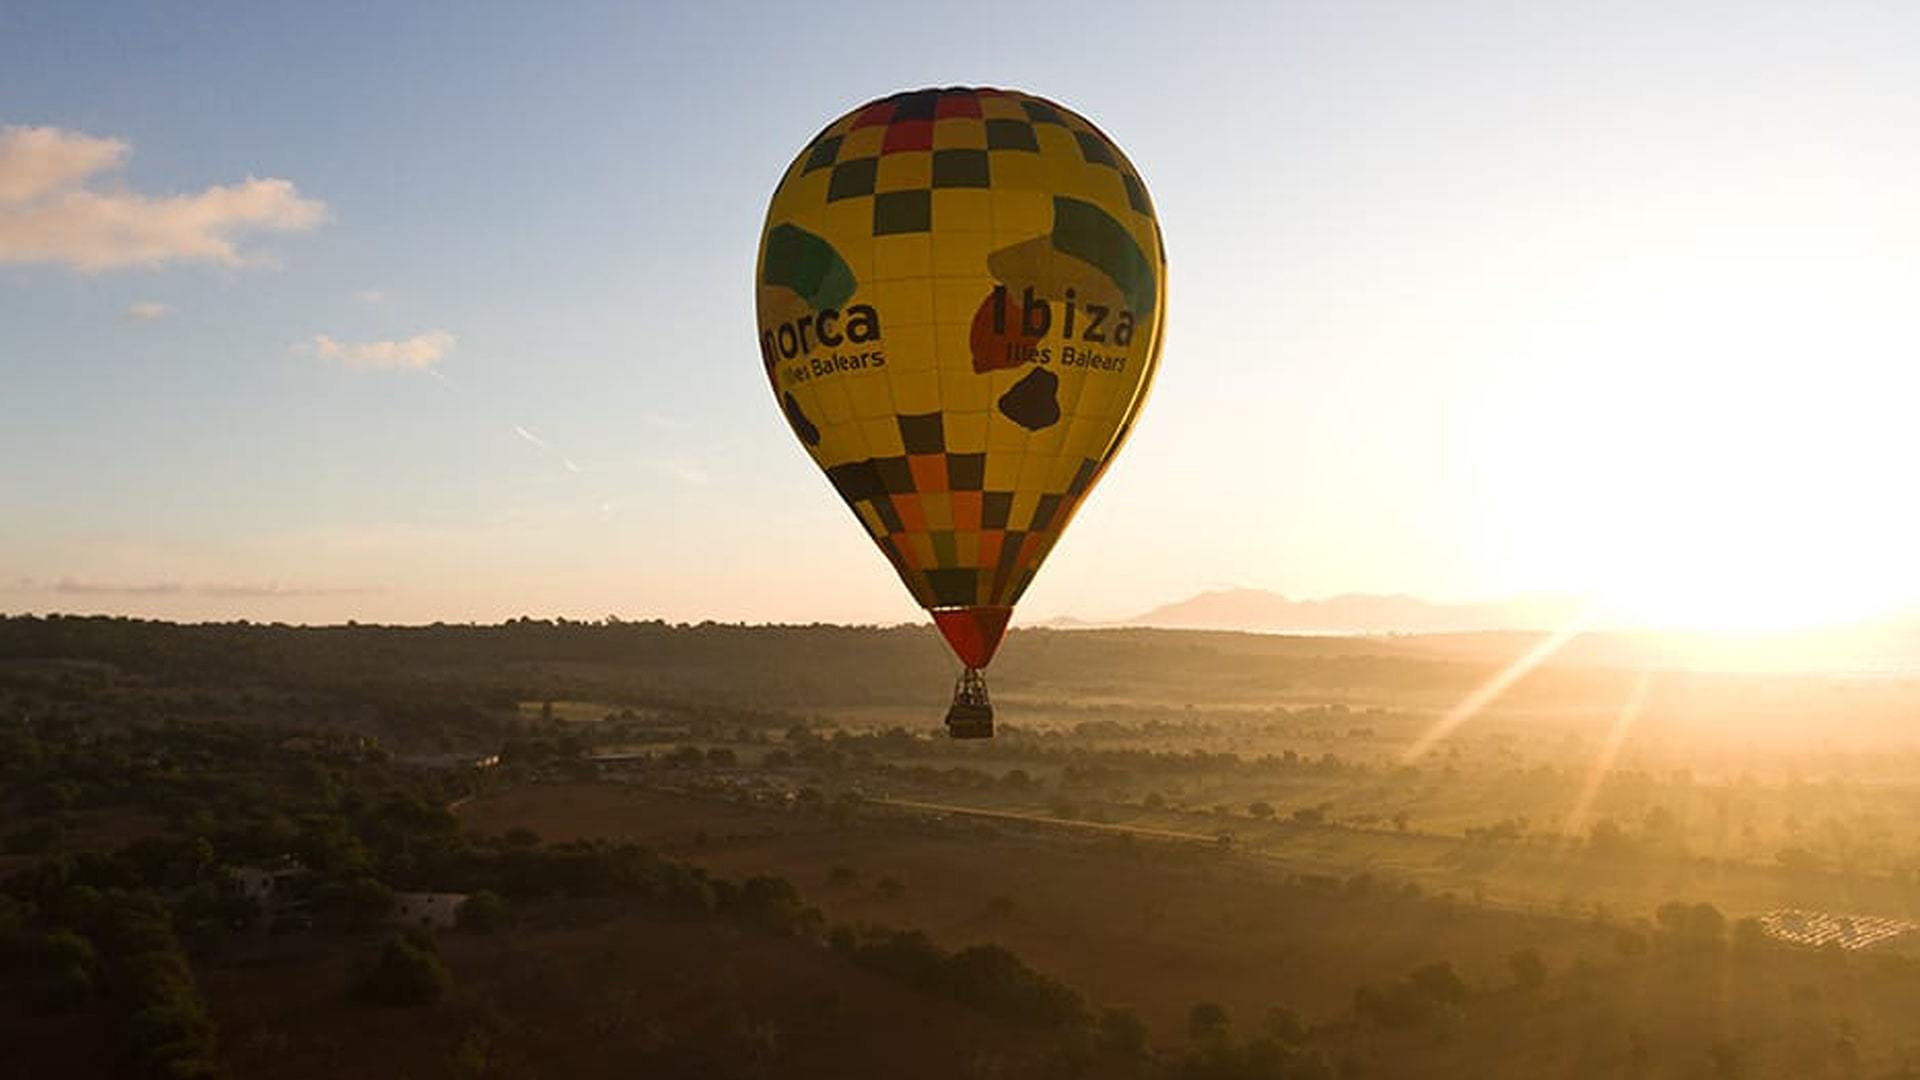 Ibiza balloon up in malllorca hot air balloons championships min